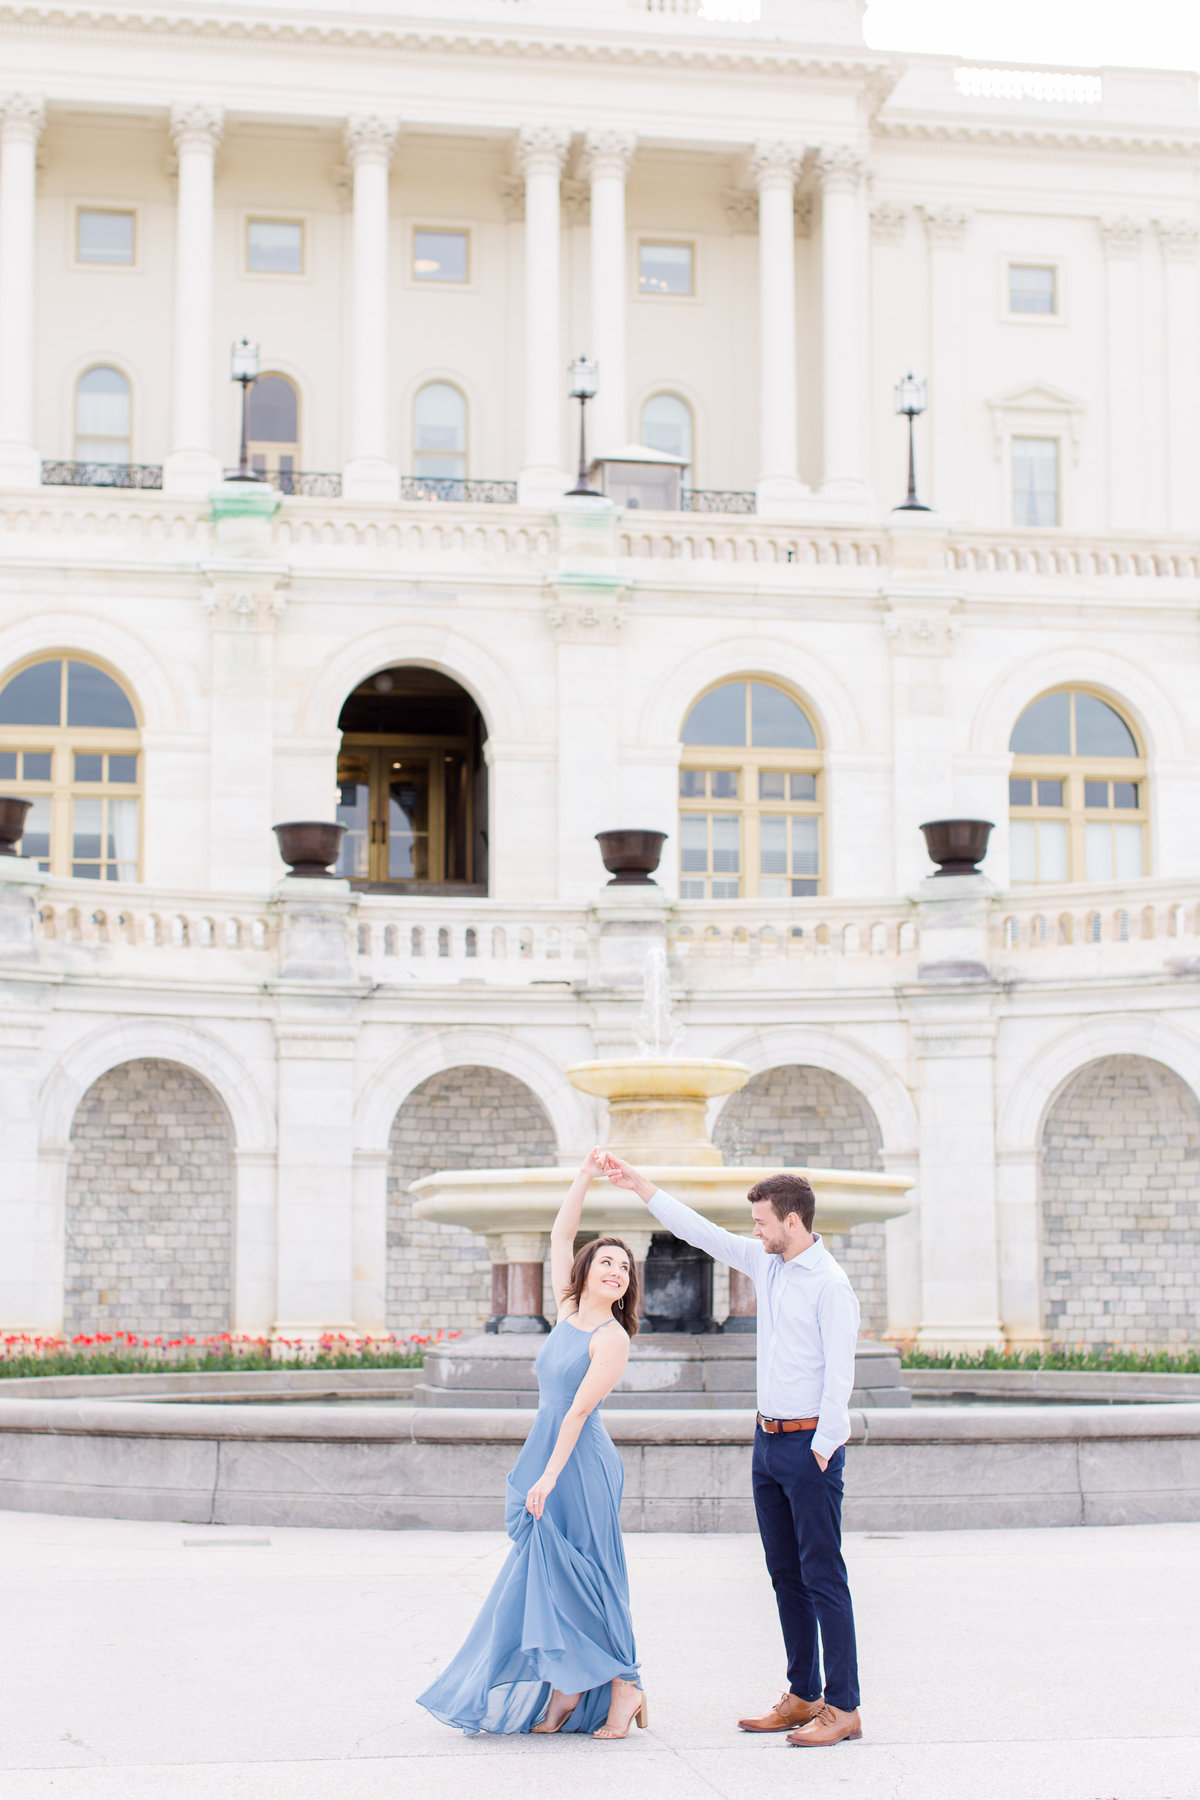 Capitol Building Engagement Session in DC with a visit to Supreme Court Building and Library of Congress | DC Wedding Photographer | Taylor Rose Photography-95